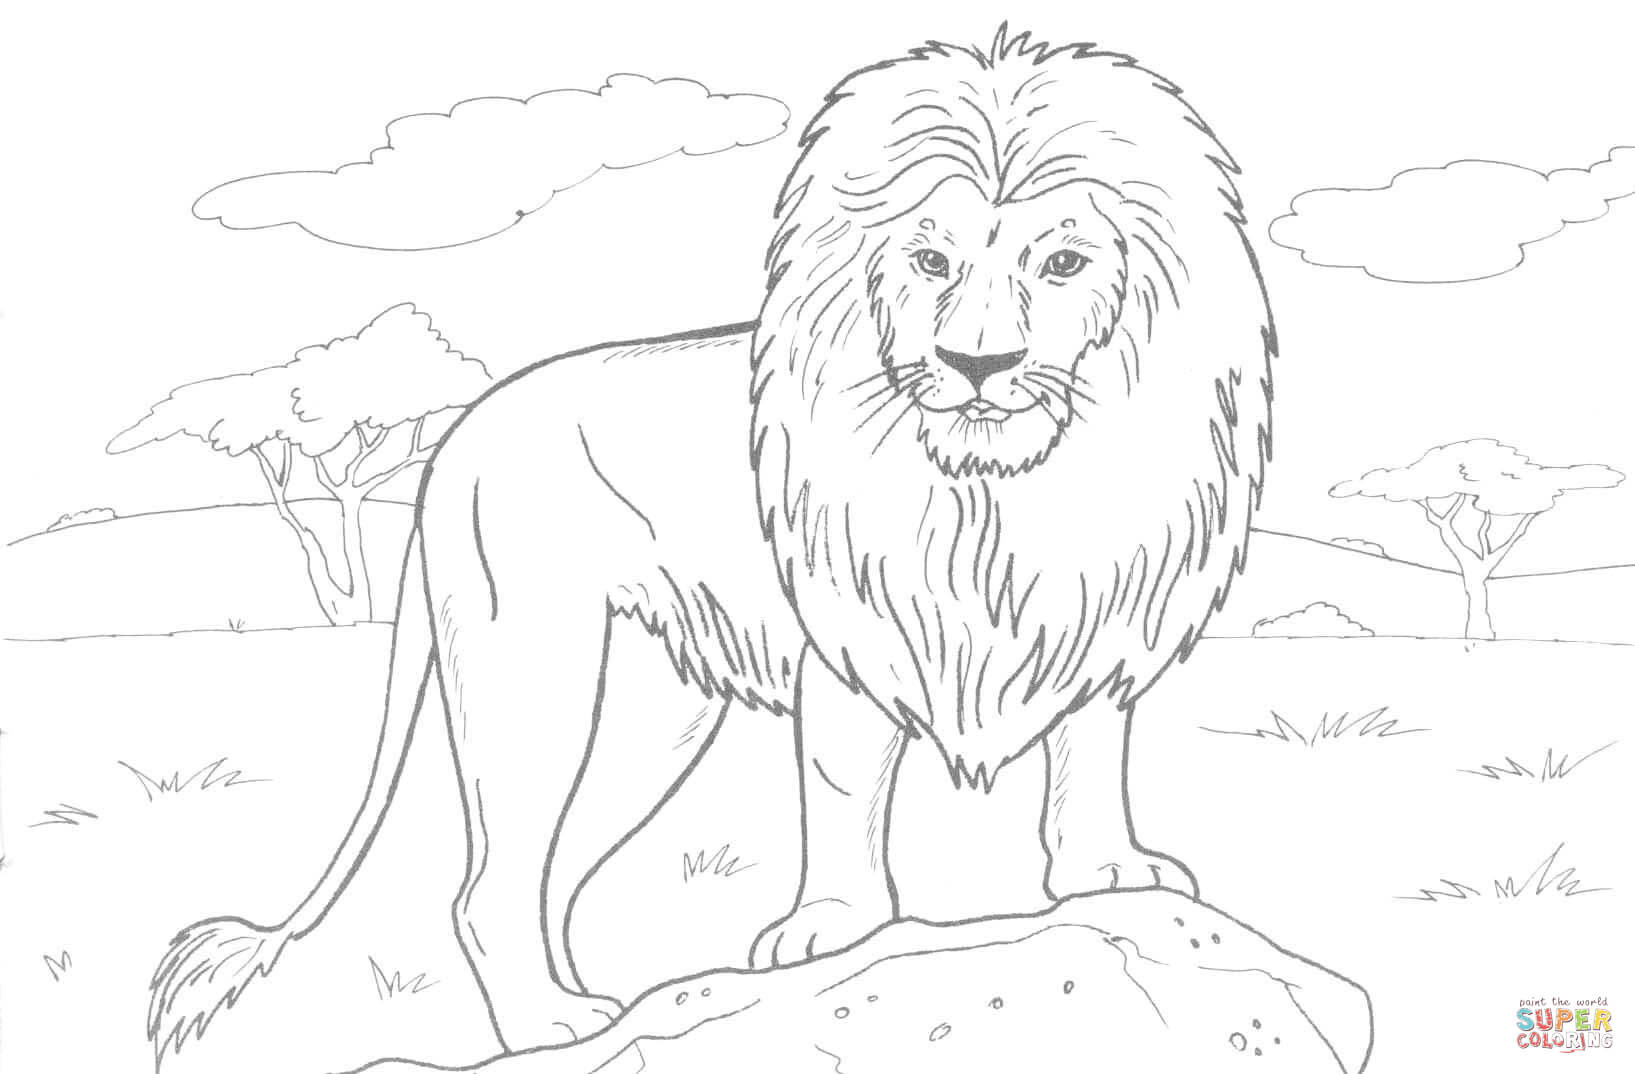 Lion Coloring Pages For Kids Animals Lion leg tattoo lion tattoo sleeves lion tattoo design sleeve tattoos flower tattoo foot flower tattoo designs flower tattoos tattoo outline drawing outline roaring lion by houseofchabrier on deviantart. lion coloring pages for kids animals